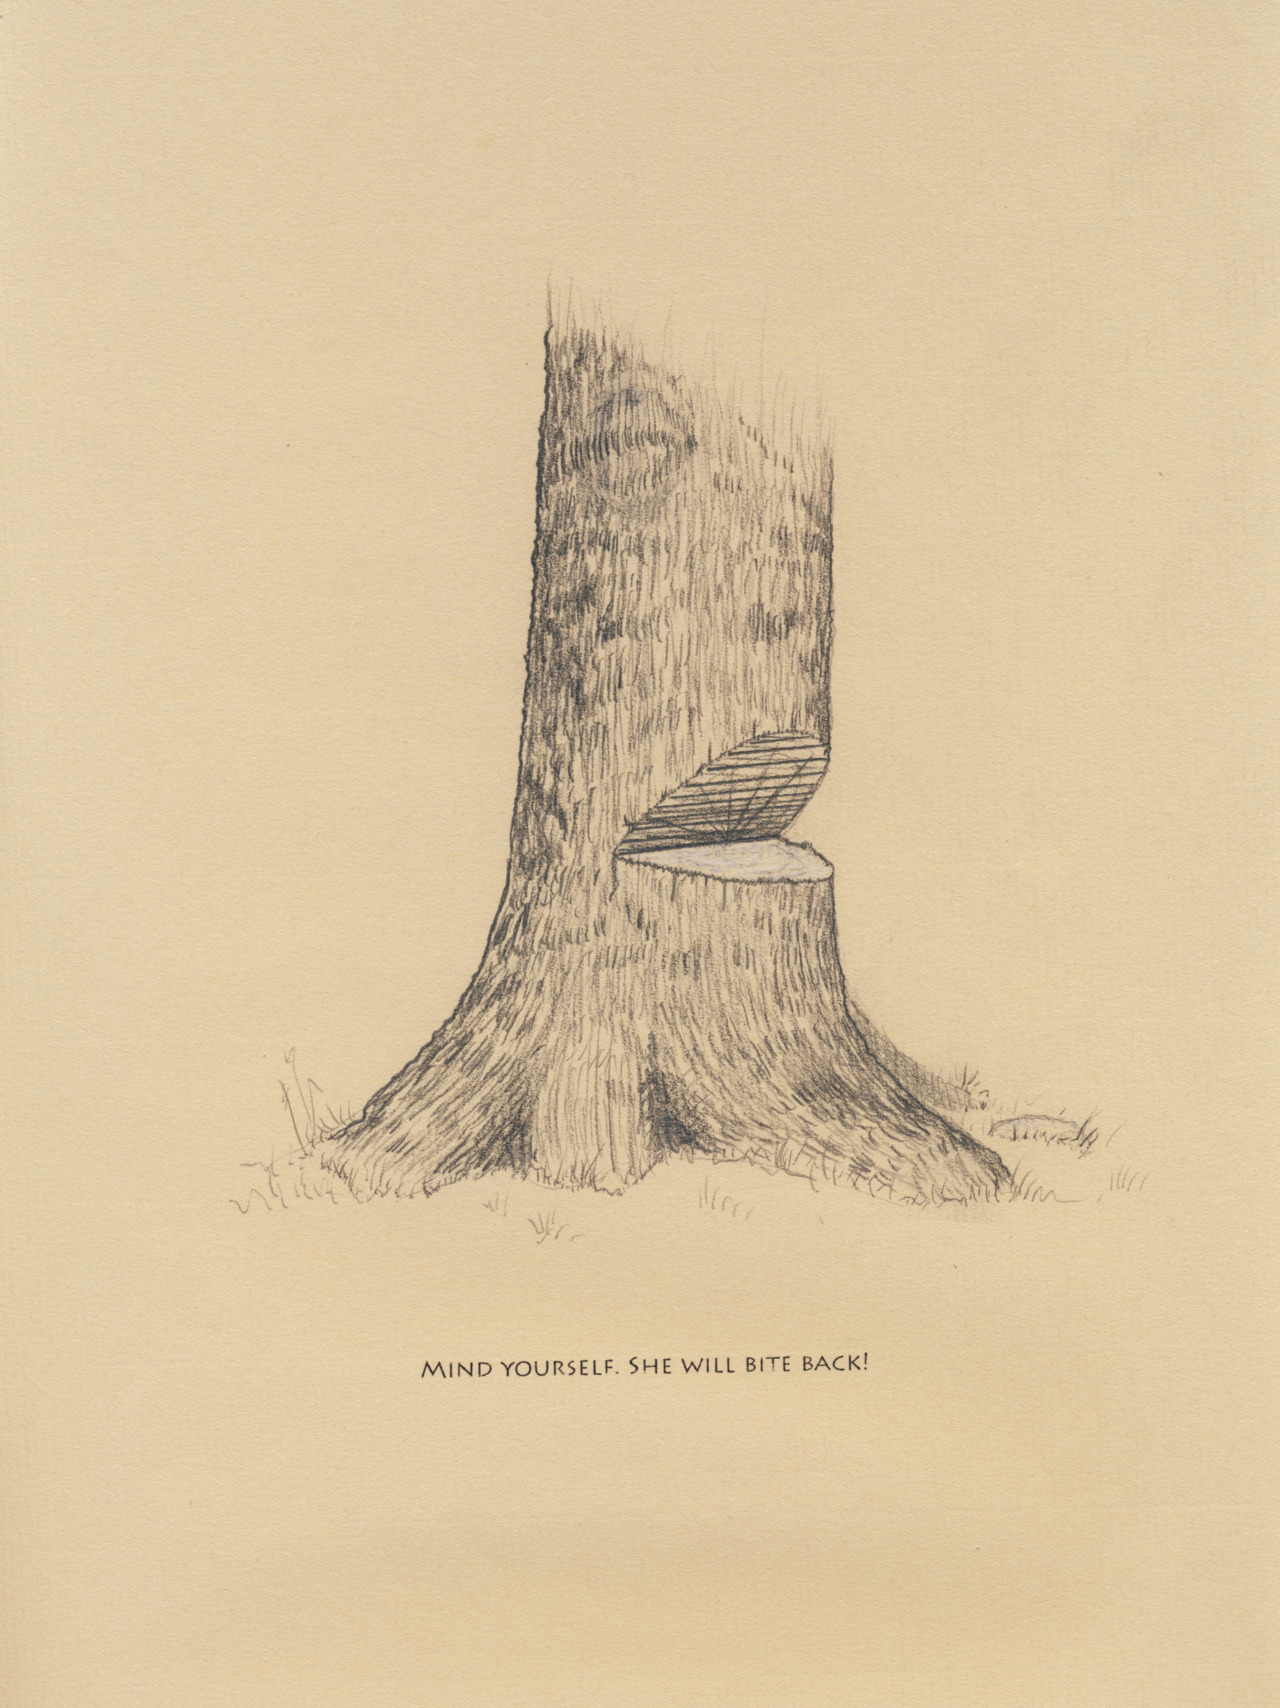 """She Will Bite Back""    Graphite, whiite pencil, carbon transfer   8.5x11""     Bibliography    Wojtkowski, Paul A.  Undoing the Damage: Silviculture for Ecologists and Environmental Scientists.  Enfield, New Hampshire: Science Publishers, 2006."